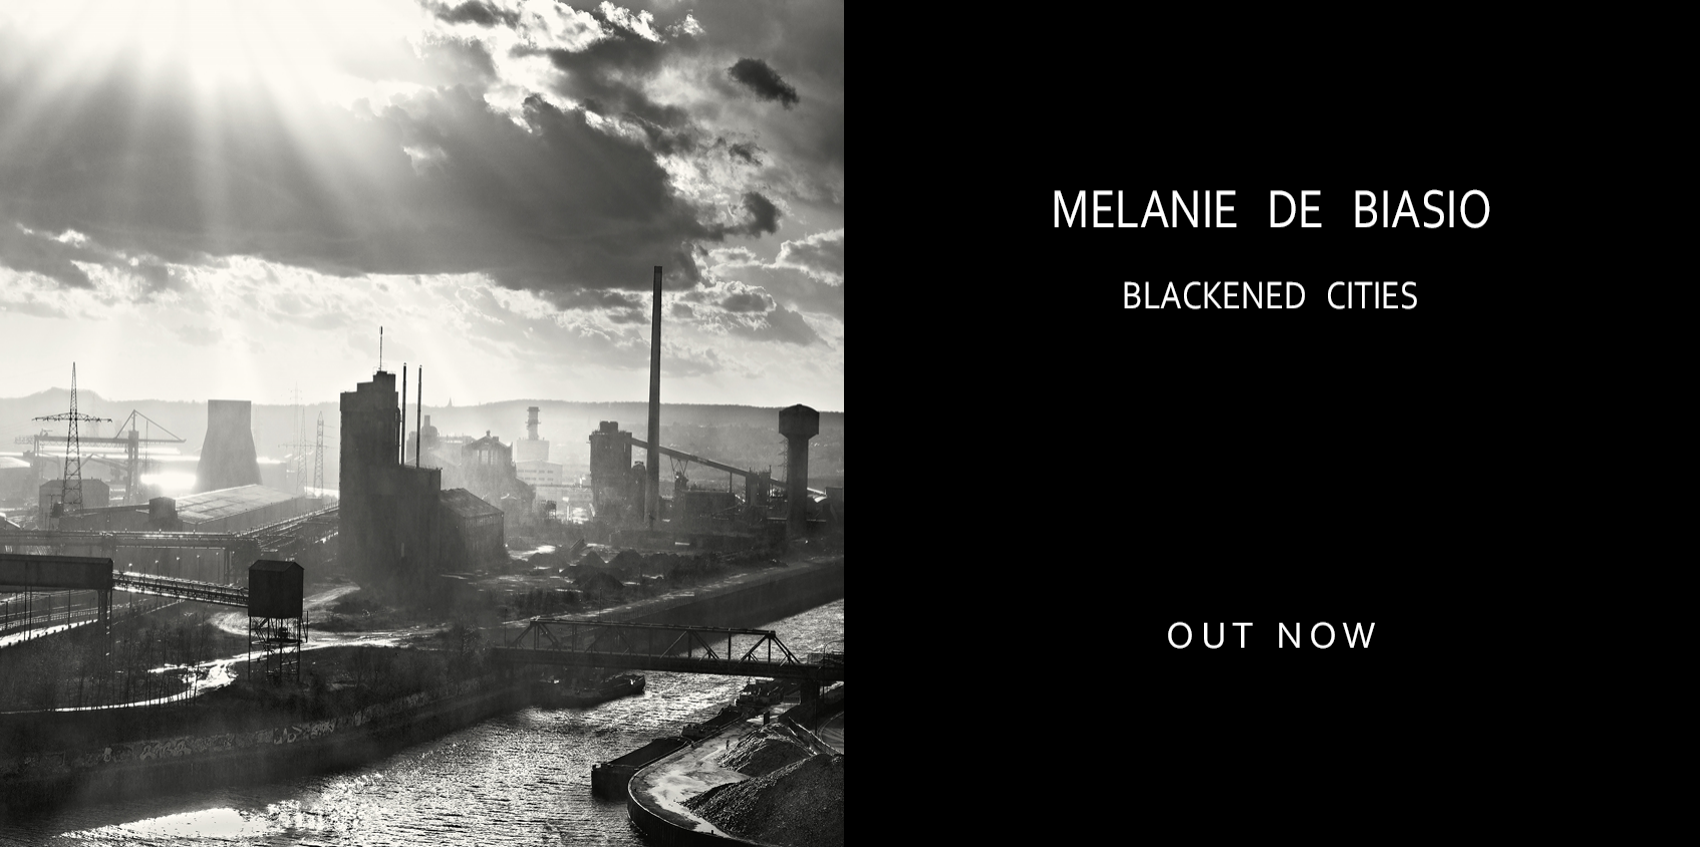 \'BLACKENED CITIES\' BY MELANIE DE BIASIO IS OUT NOW